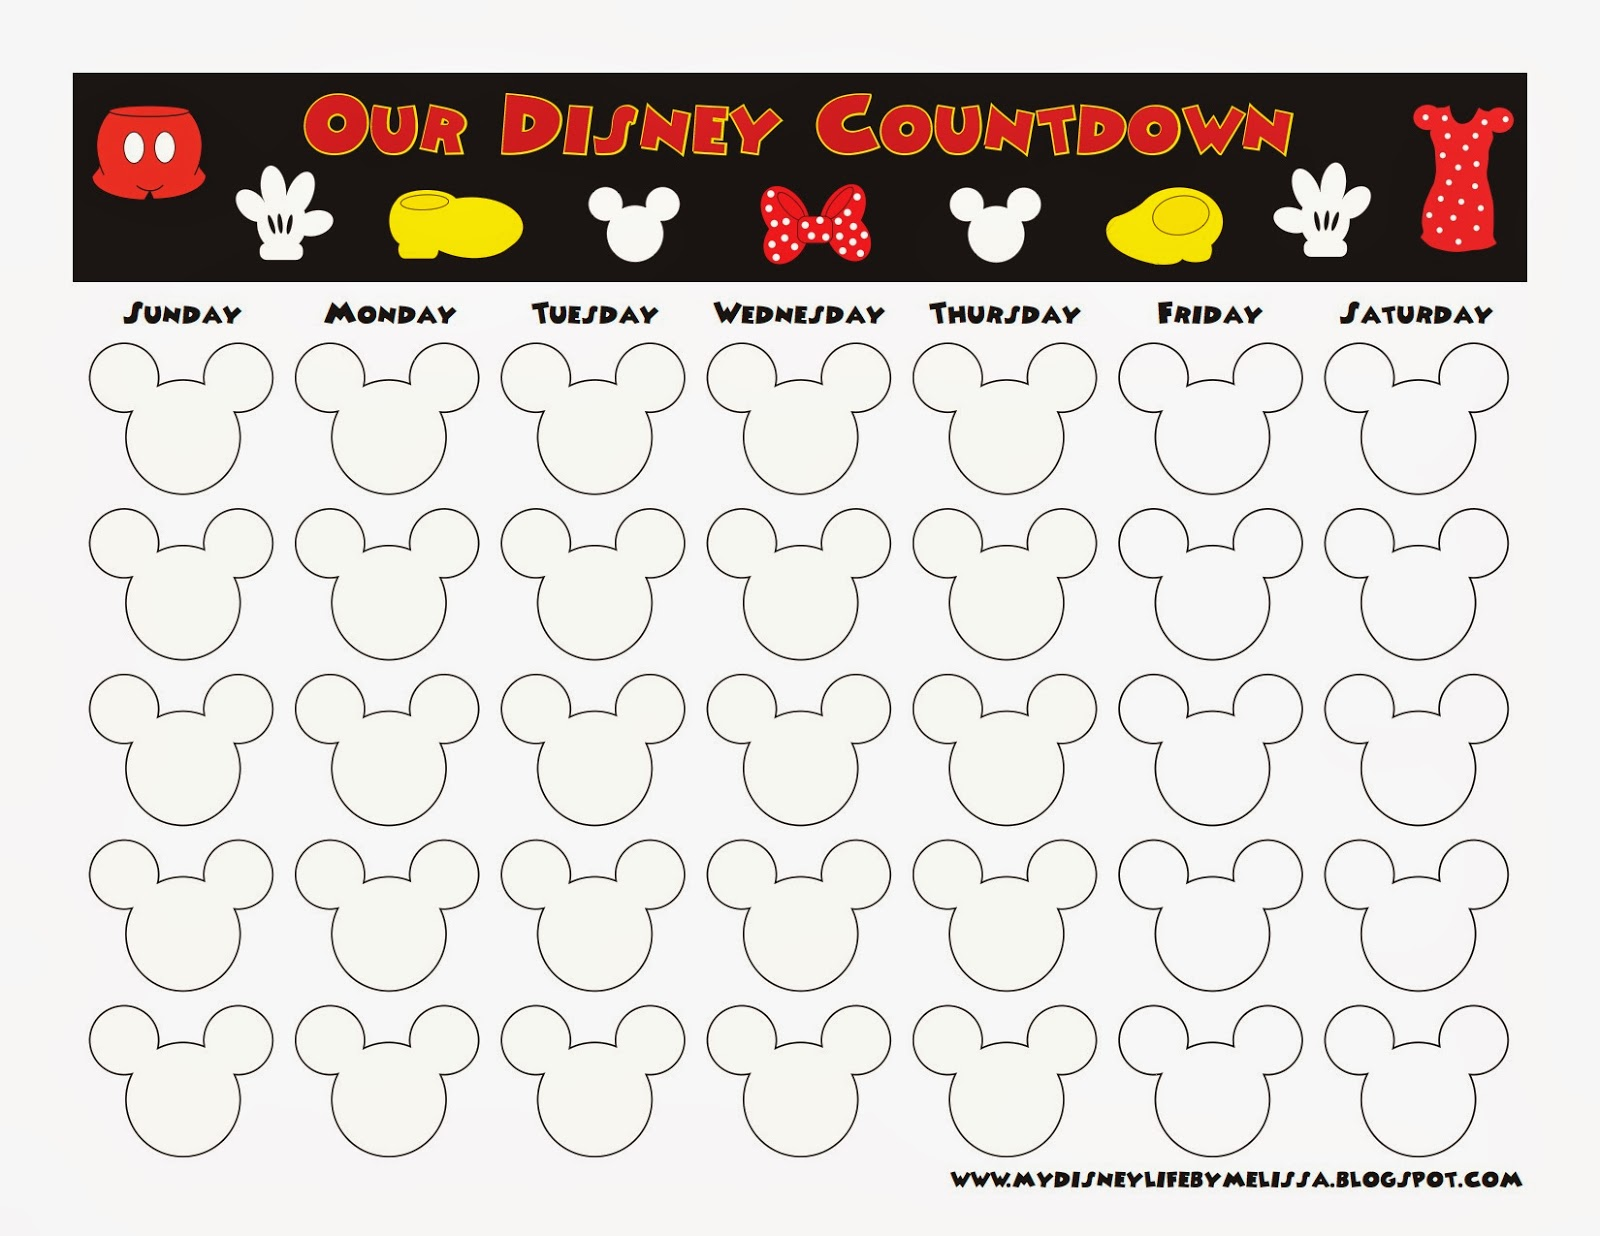 Countdown calendar printable calendar template for Countdown chart template